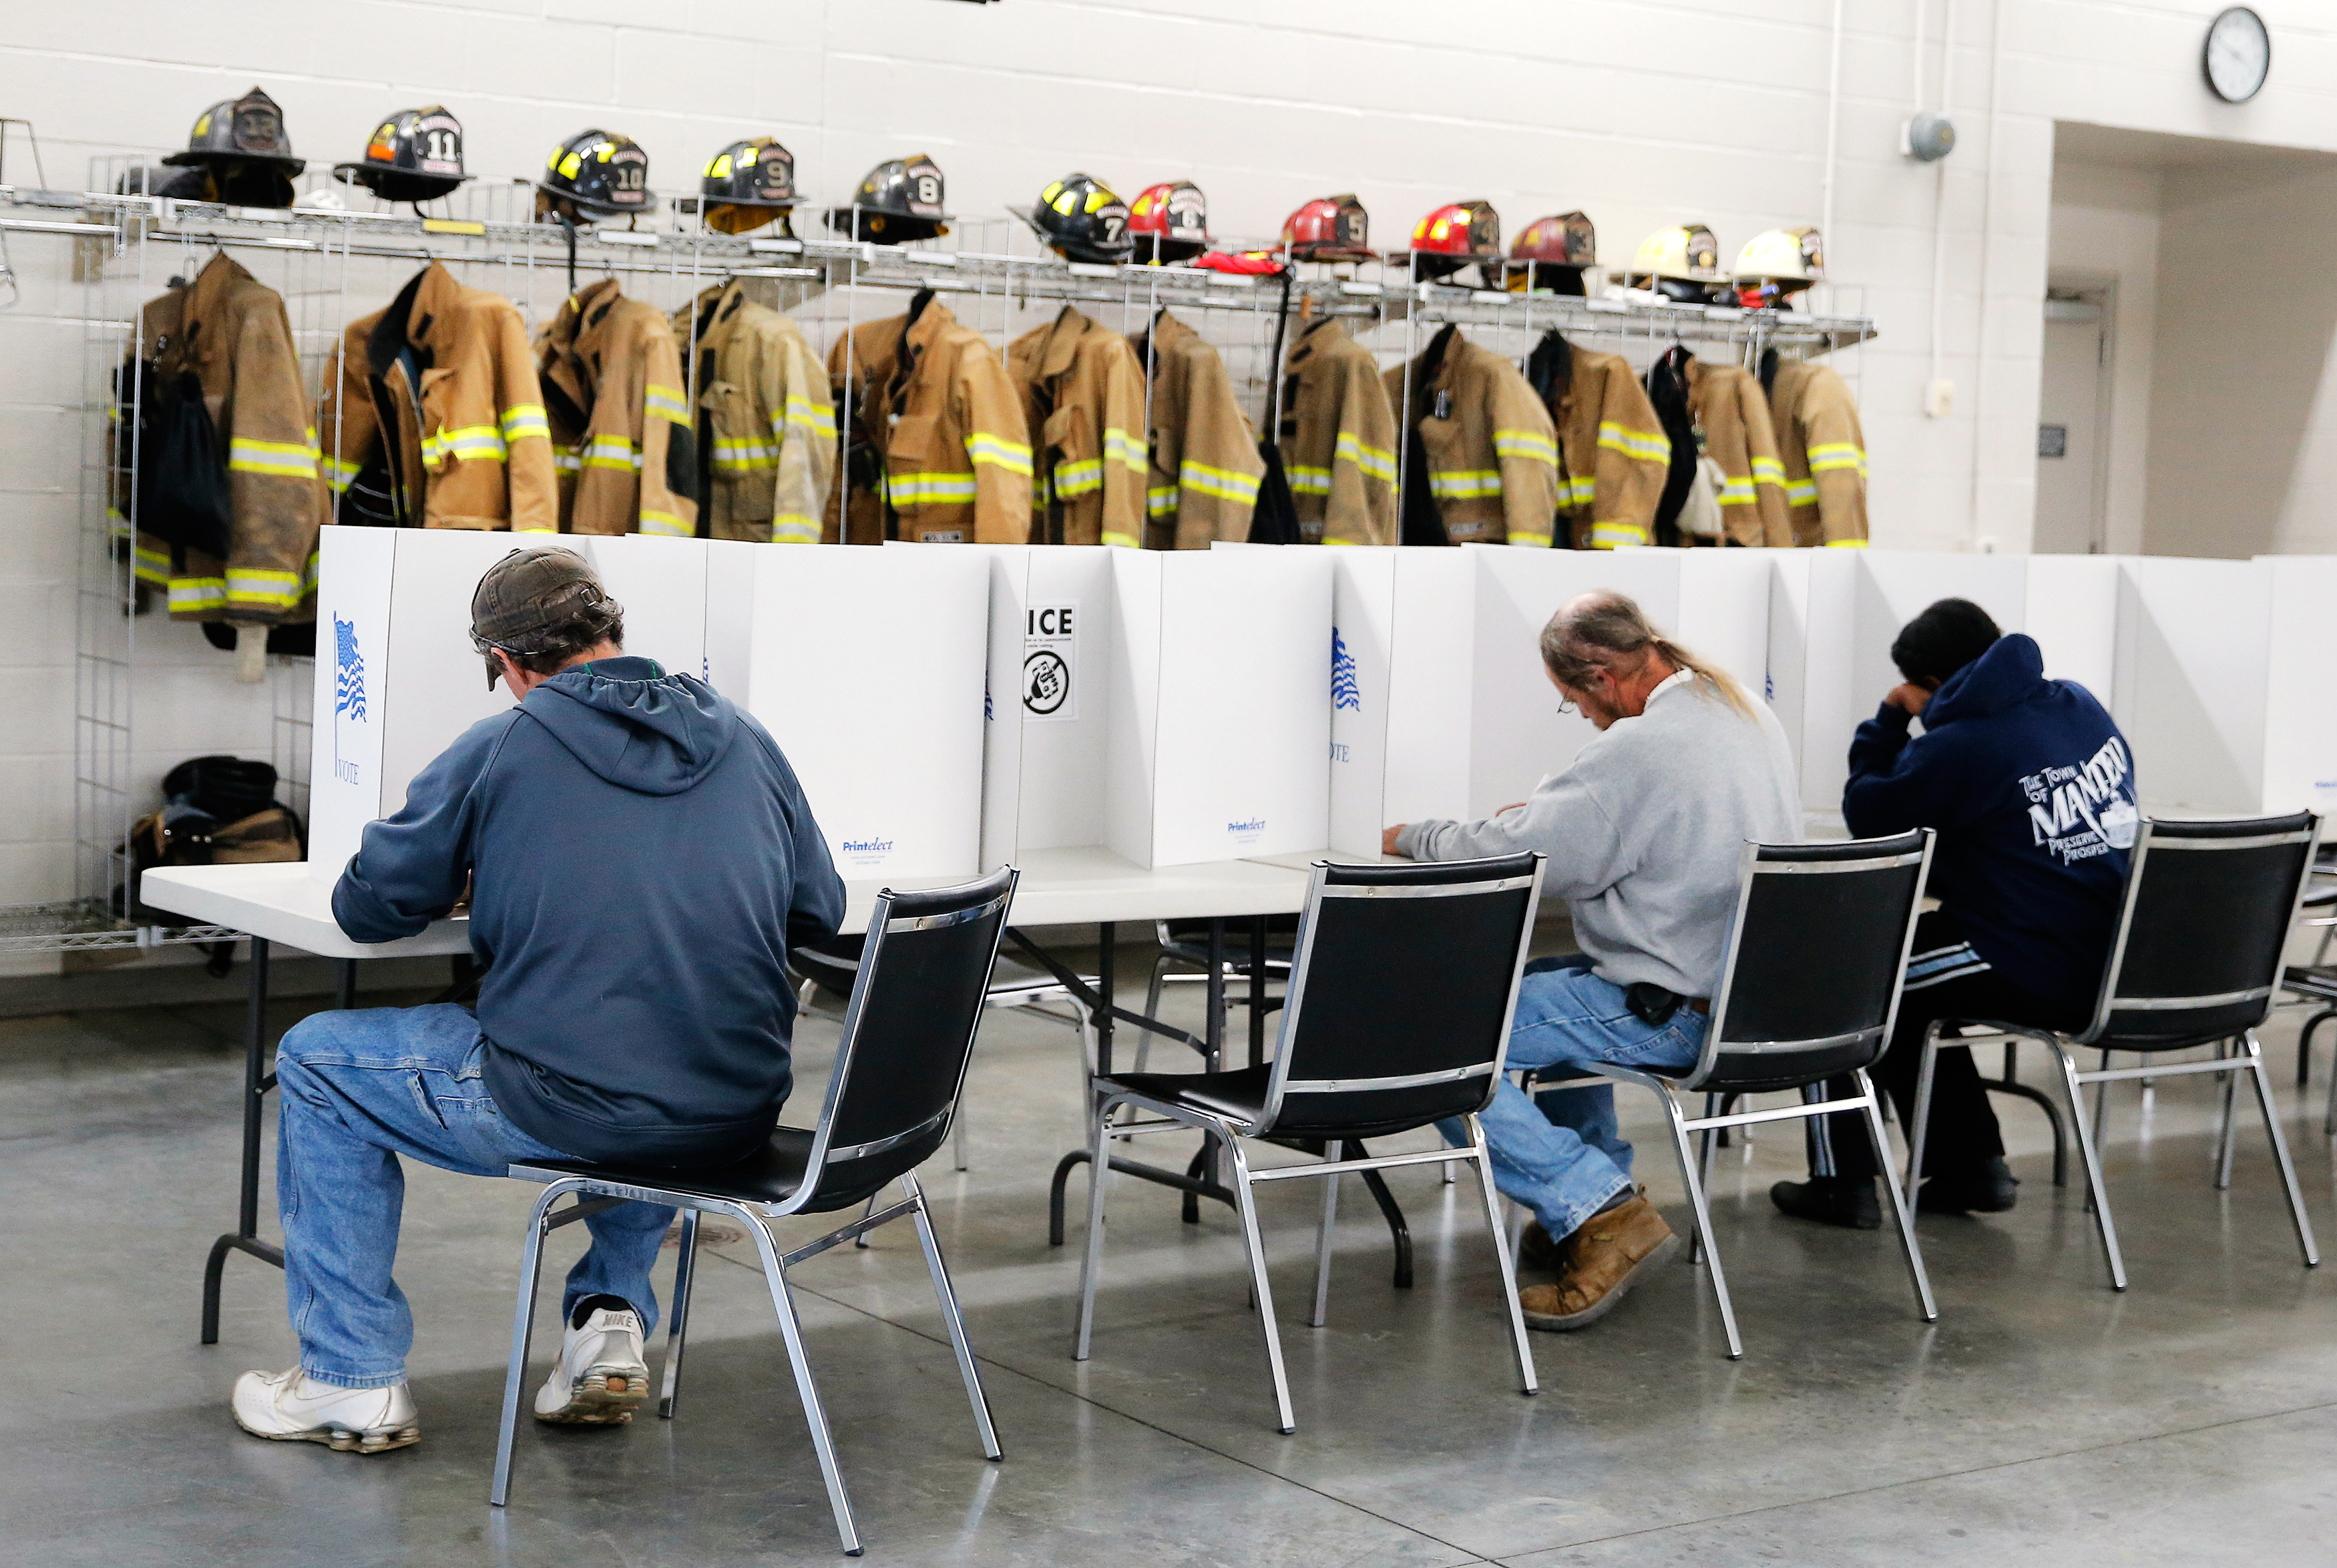 Voters fill out their ballots on election day for the U.S. presidential election at Elevation Fire Station in Benson, North Carolina